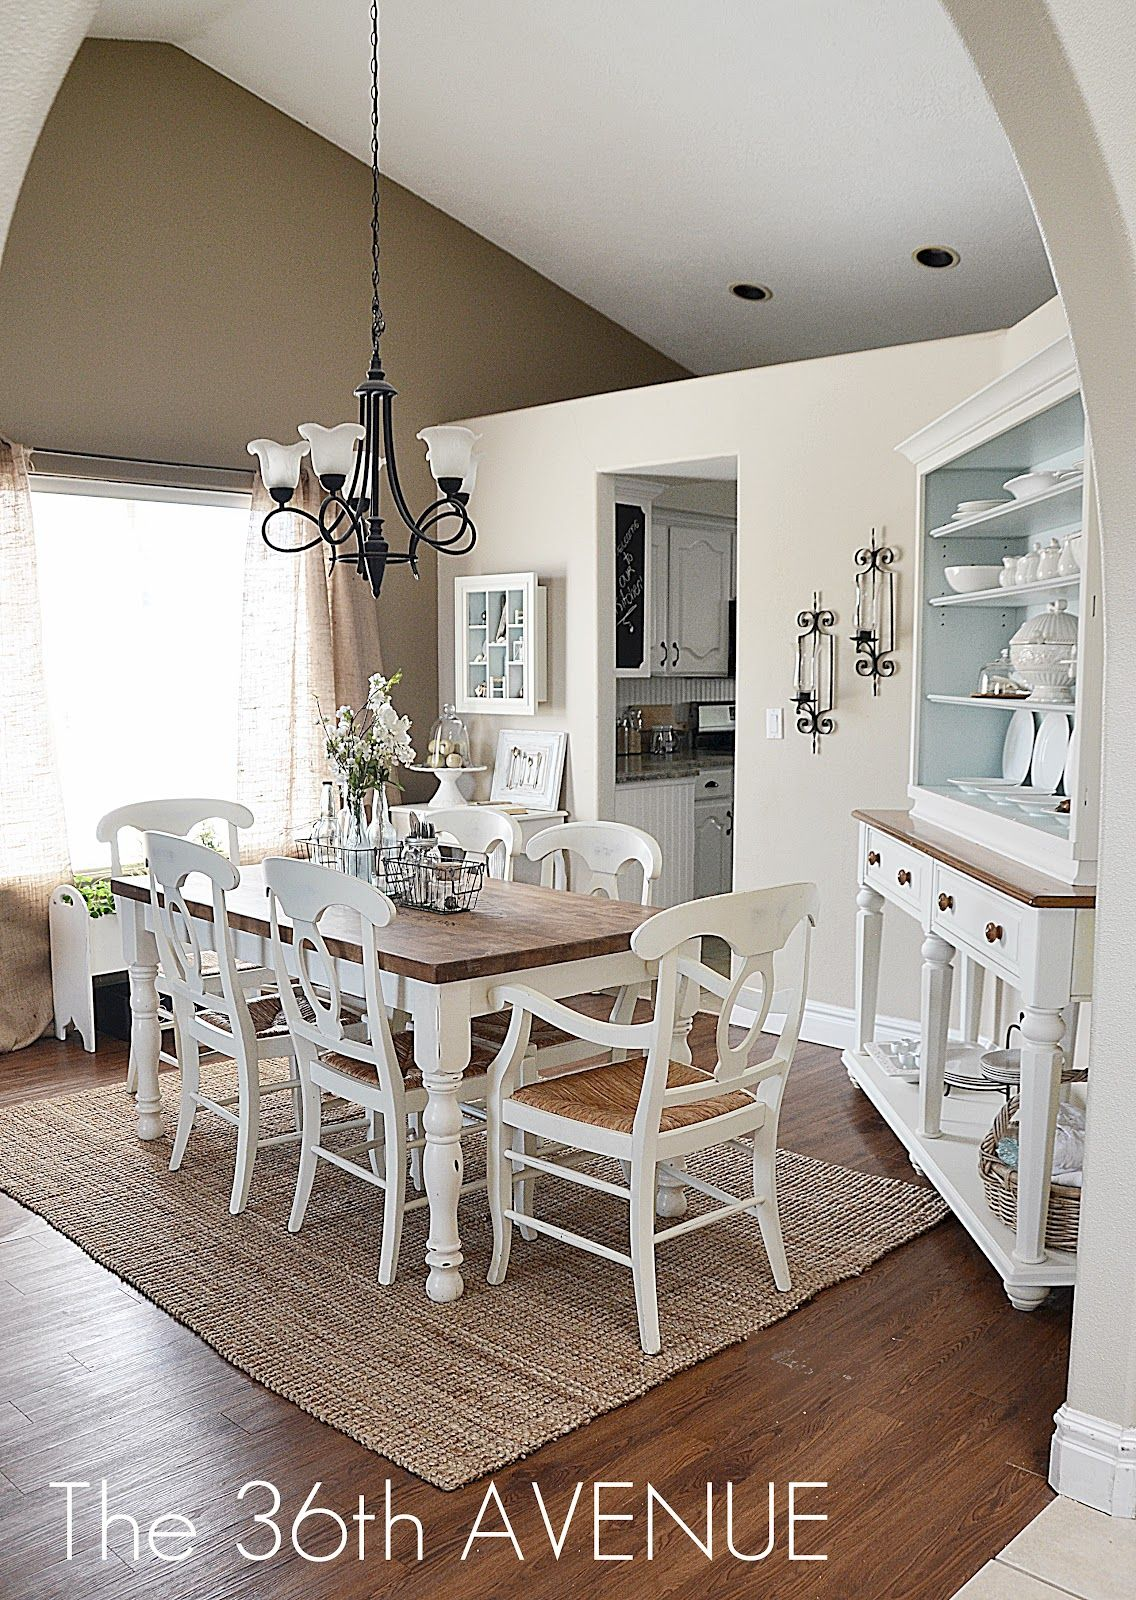 Dining Room Reveal and Design Tips Home decor, Dining